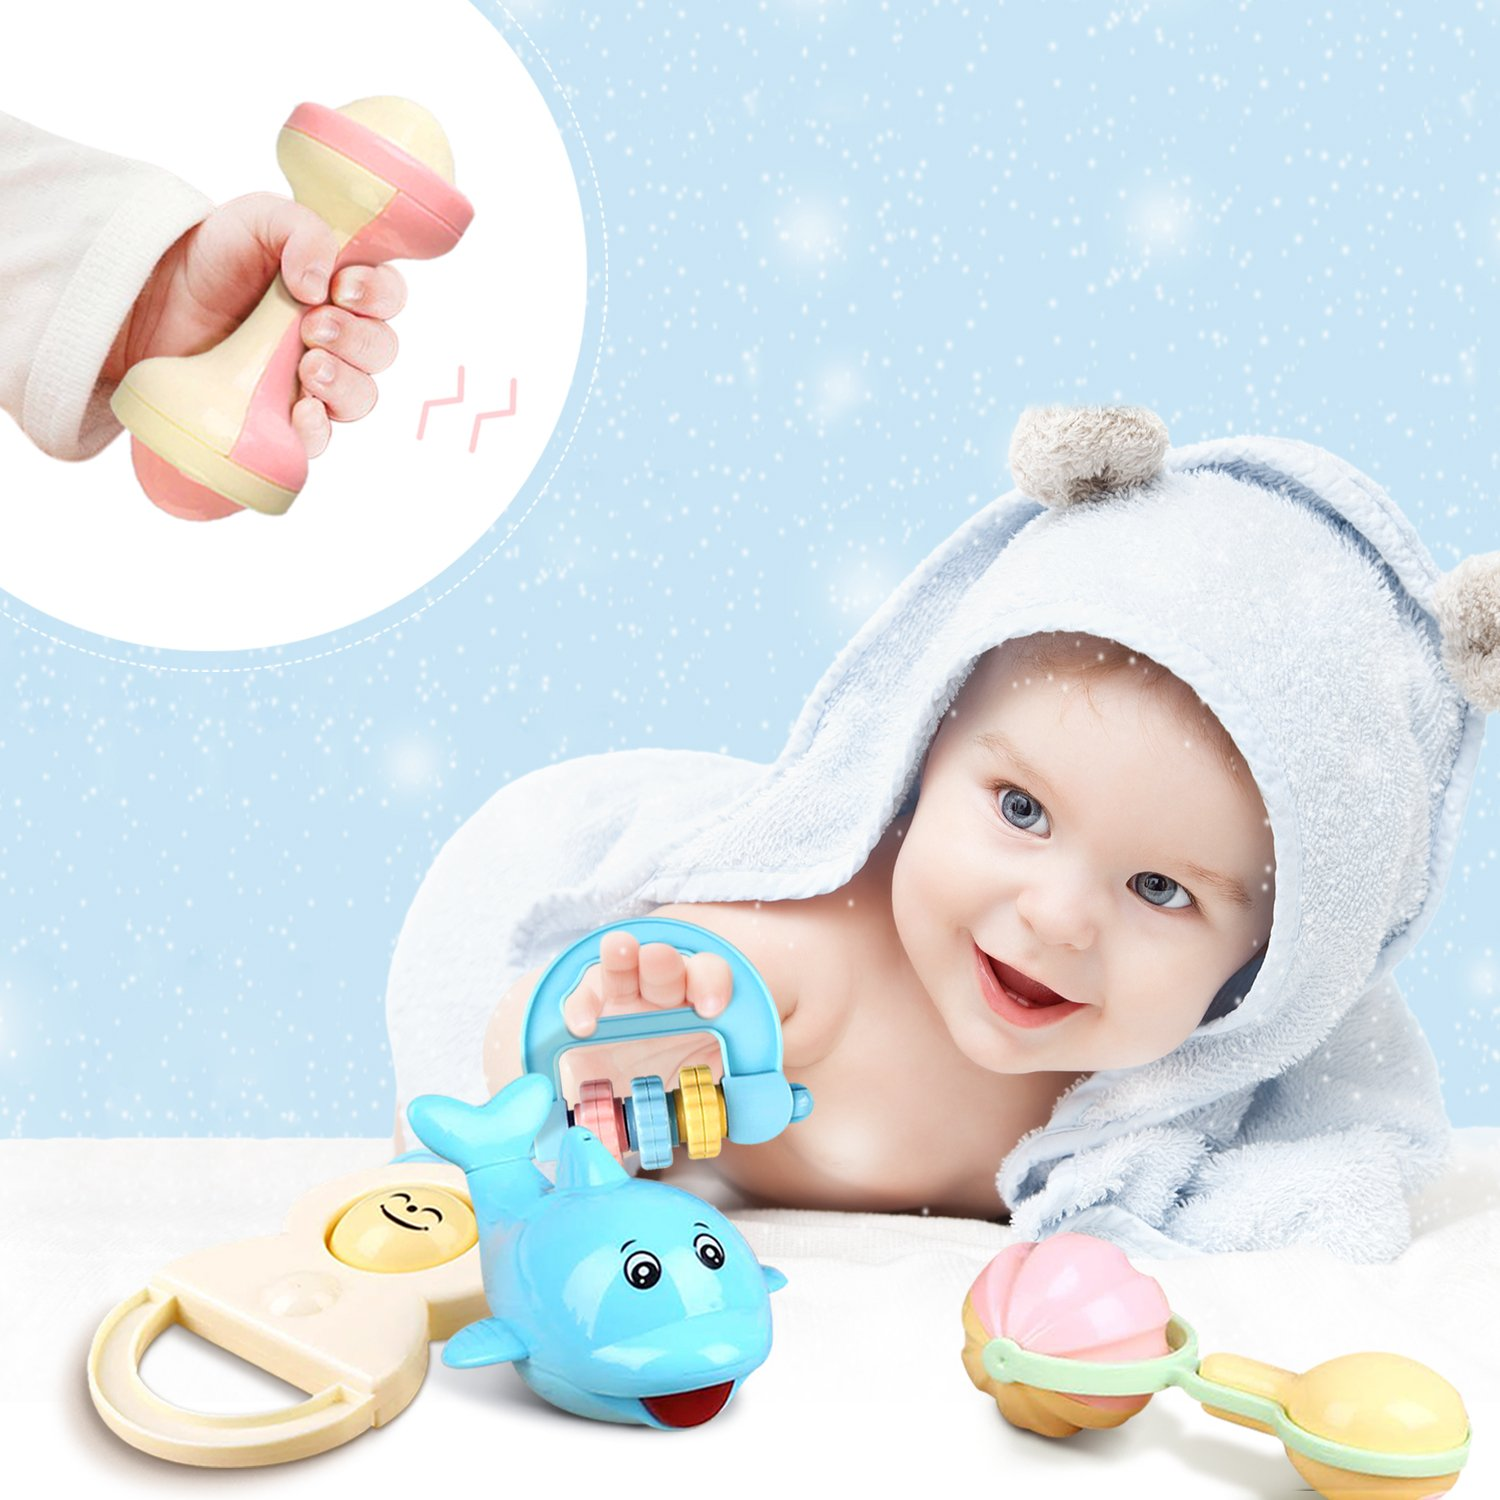 Baby Rattle Toys Set - Grab and Spin Rattle\'n Rock Shaker Ring Hand Bell Toys for Newborn Baby, Infant Toddler Nursery Gift Play Set by Peradix